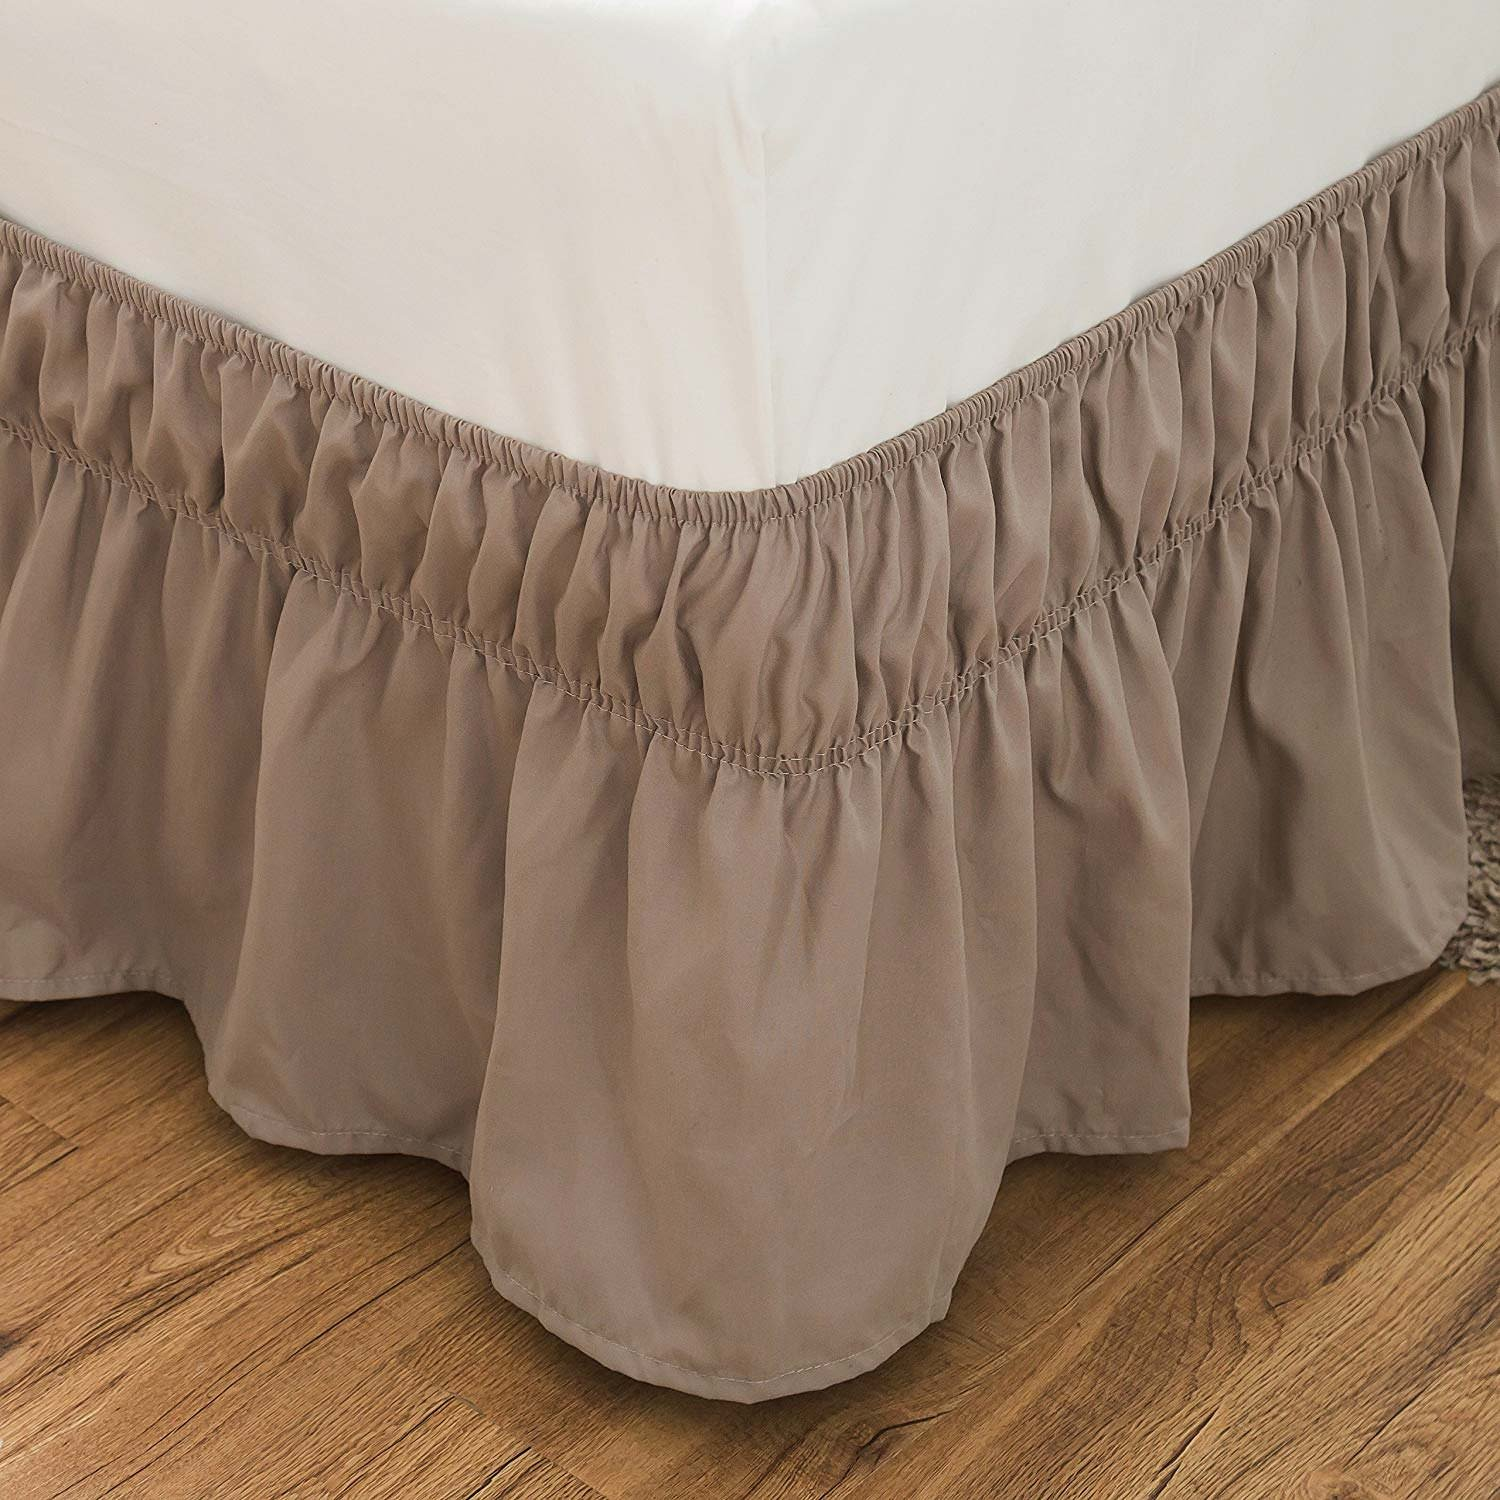 Wrap Around Bed Skirt, Elastic Dust Ruffle Easy Fit Wrinkle and Fade Resistant Solid Color Hotel Quality Fabric, Twin/Twin-XL,Taupe